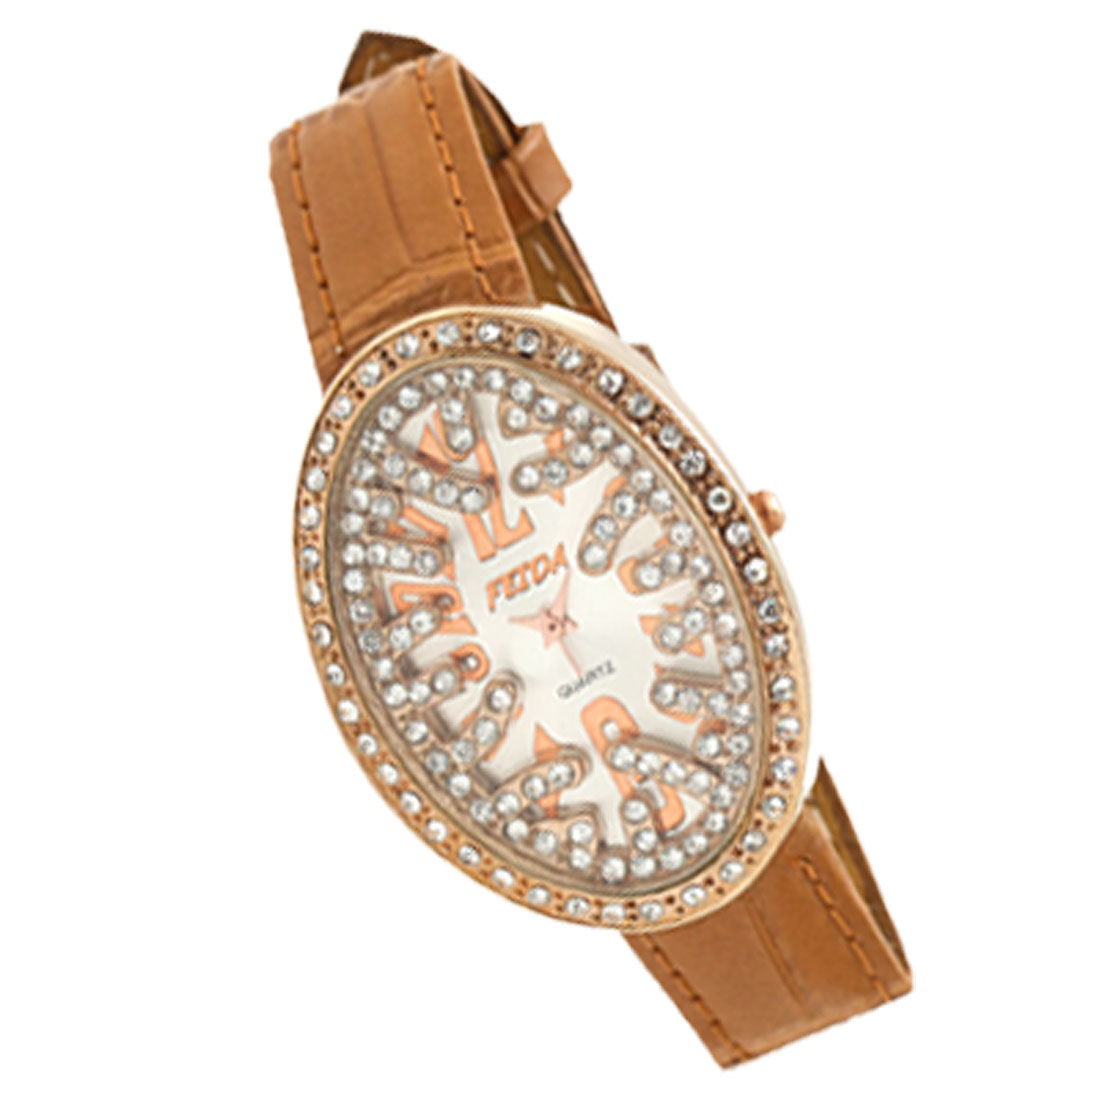 Bird's Nest Shaped Khaki Leather Rhinestone Lady's Wristwatch